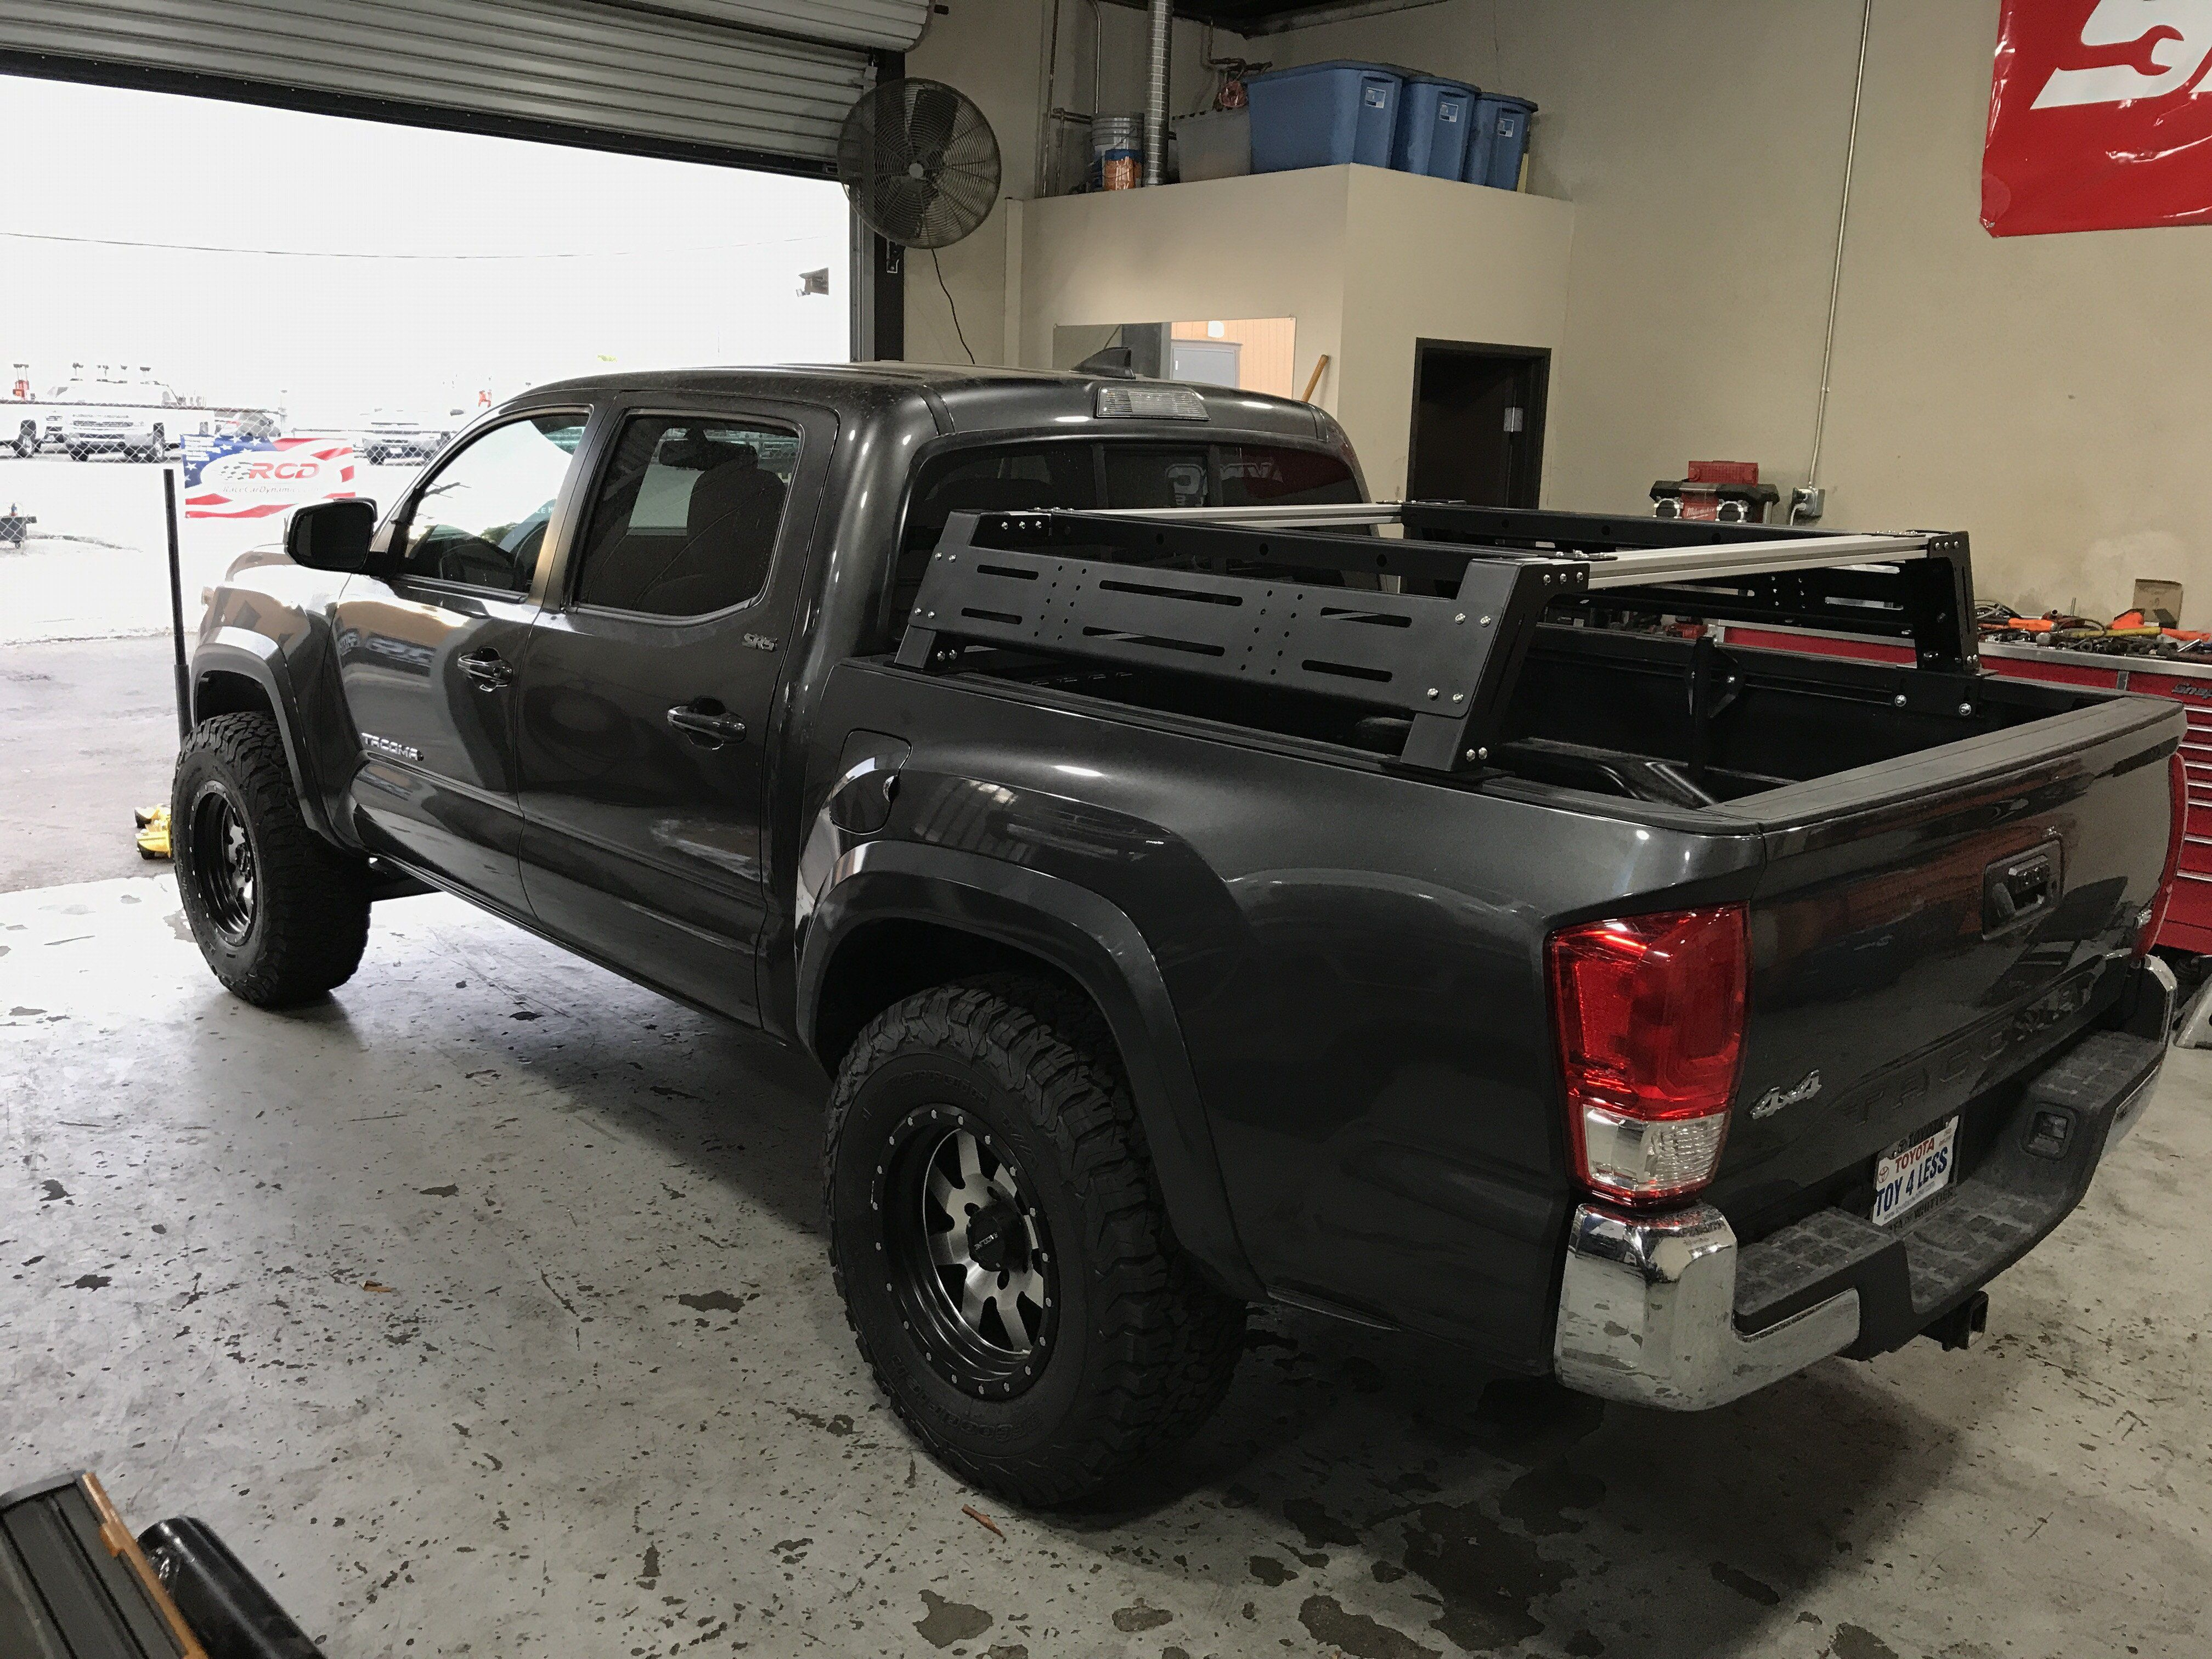 20052020 Toyota Overland Bed Rack Toyota